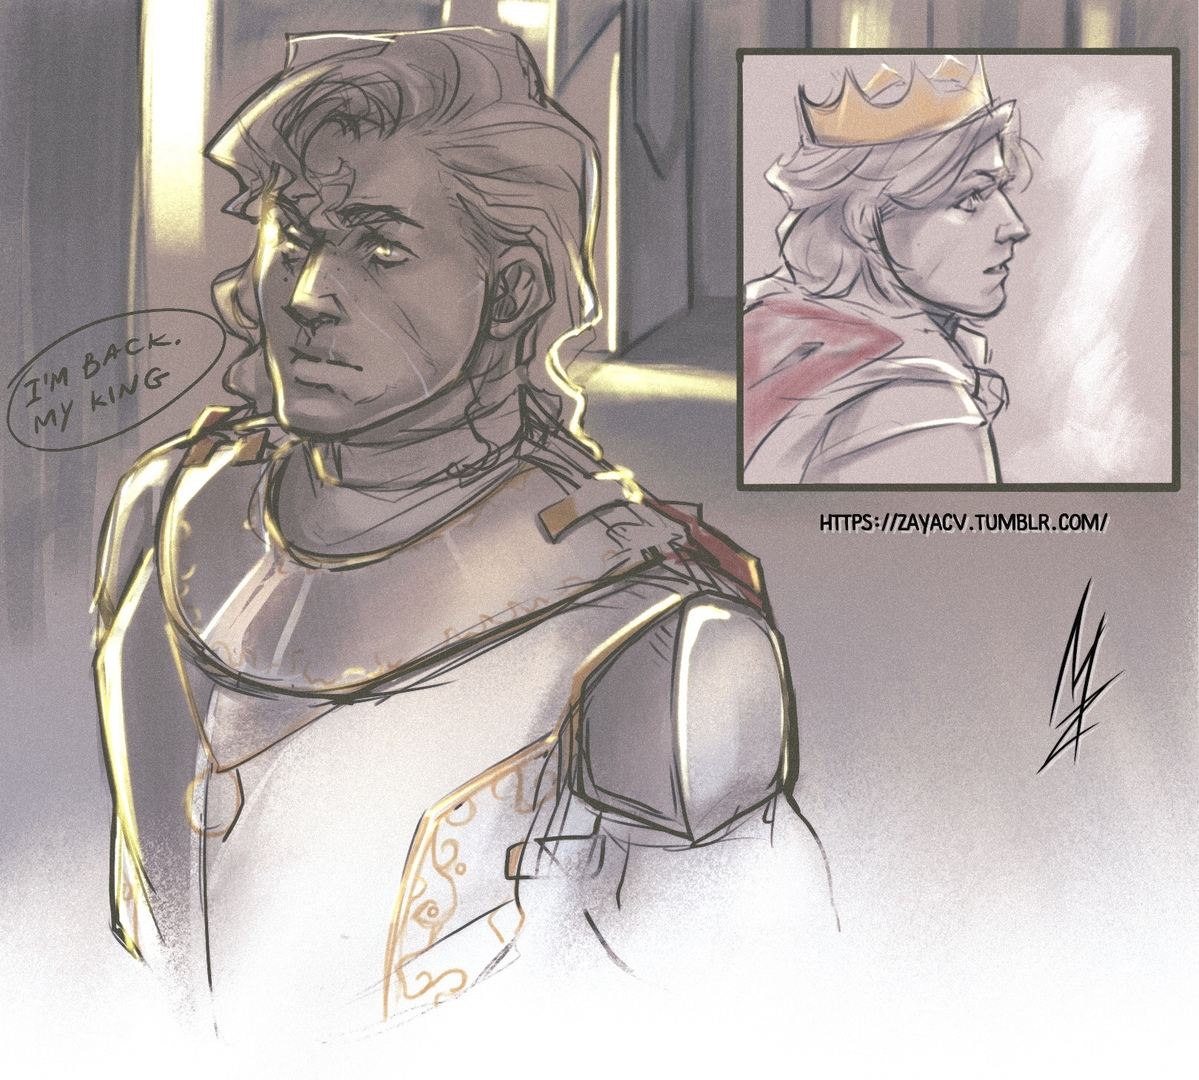 """King and his loyal Knight.  Small sketch for Patreon (actually it's kind of """"before"""" for the monthly nsfw sketch XD) #artbyzayac #harringrove #steveharrington #billyhargrove pic.twitter.com/XHsKXIHIzR"""